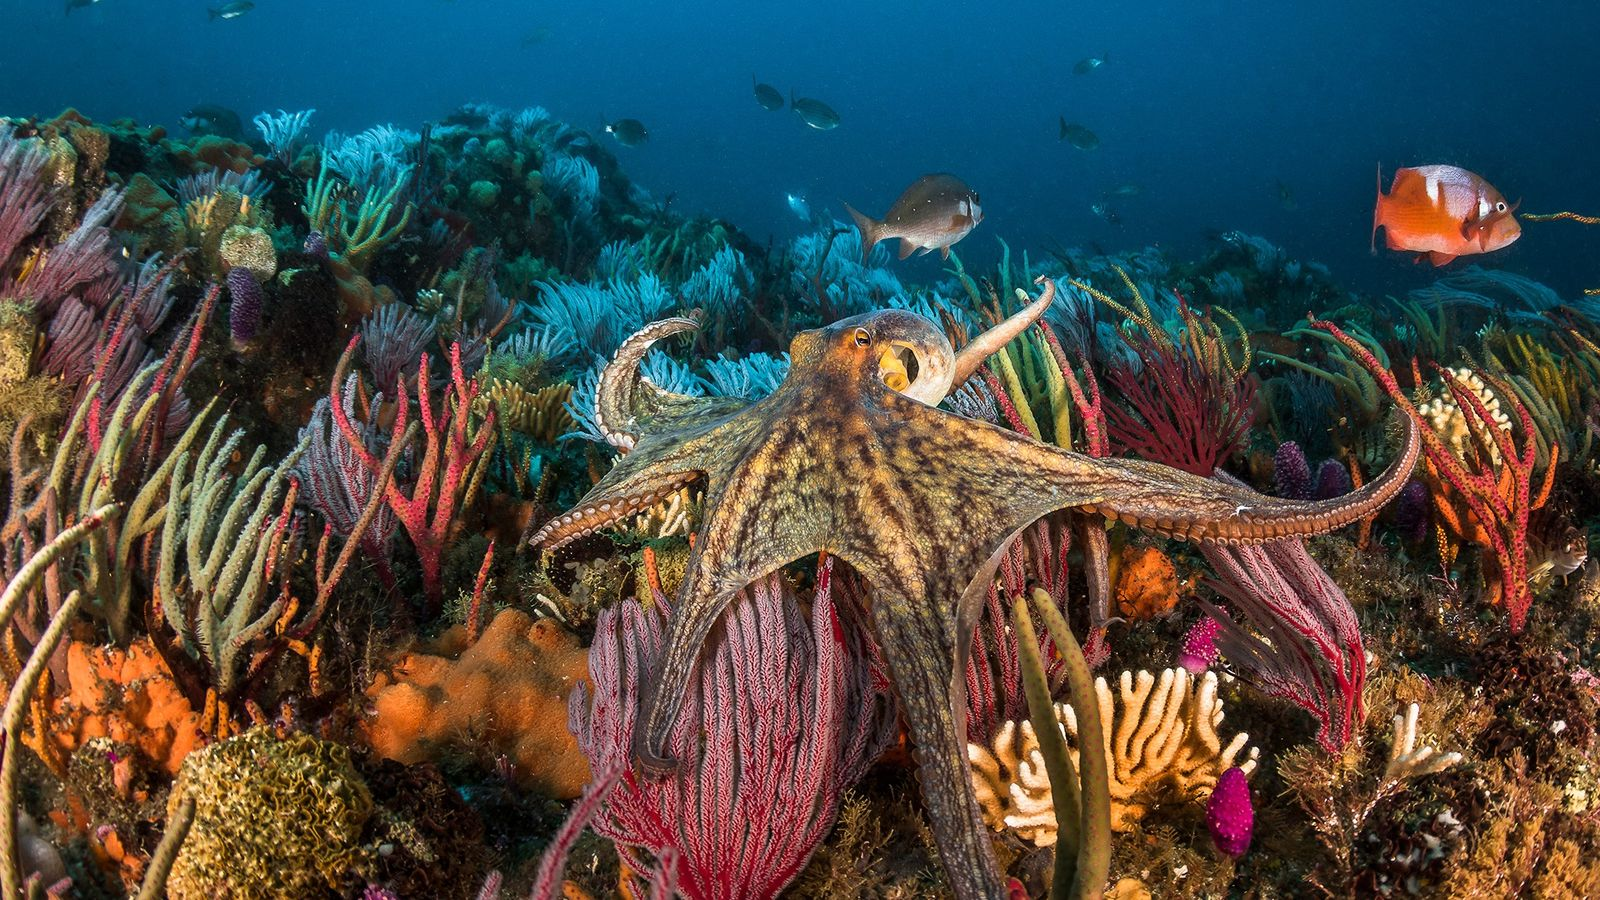 The common octopus, O. vulgaris, is found around the world. As the popularity of eating octopus ...